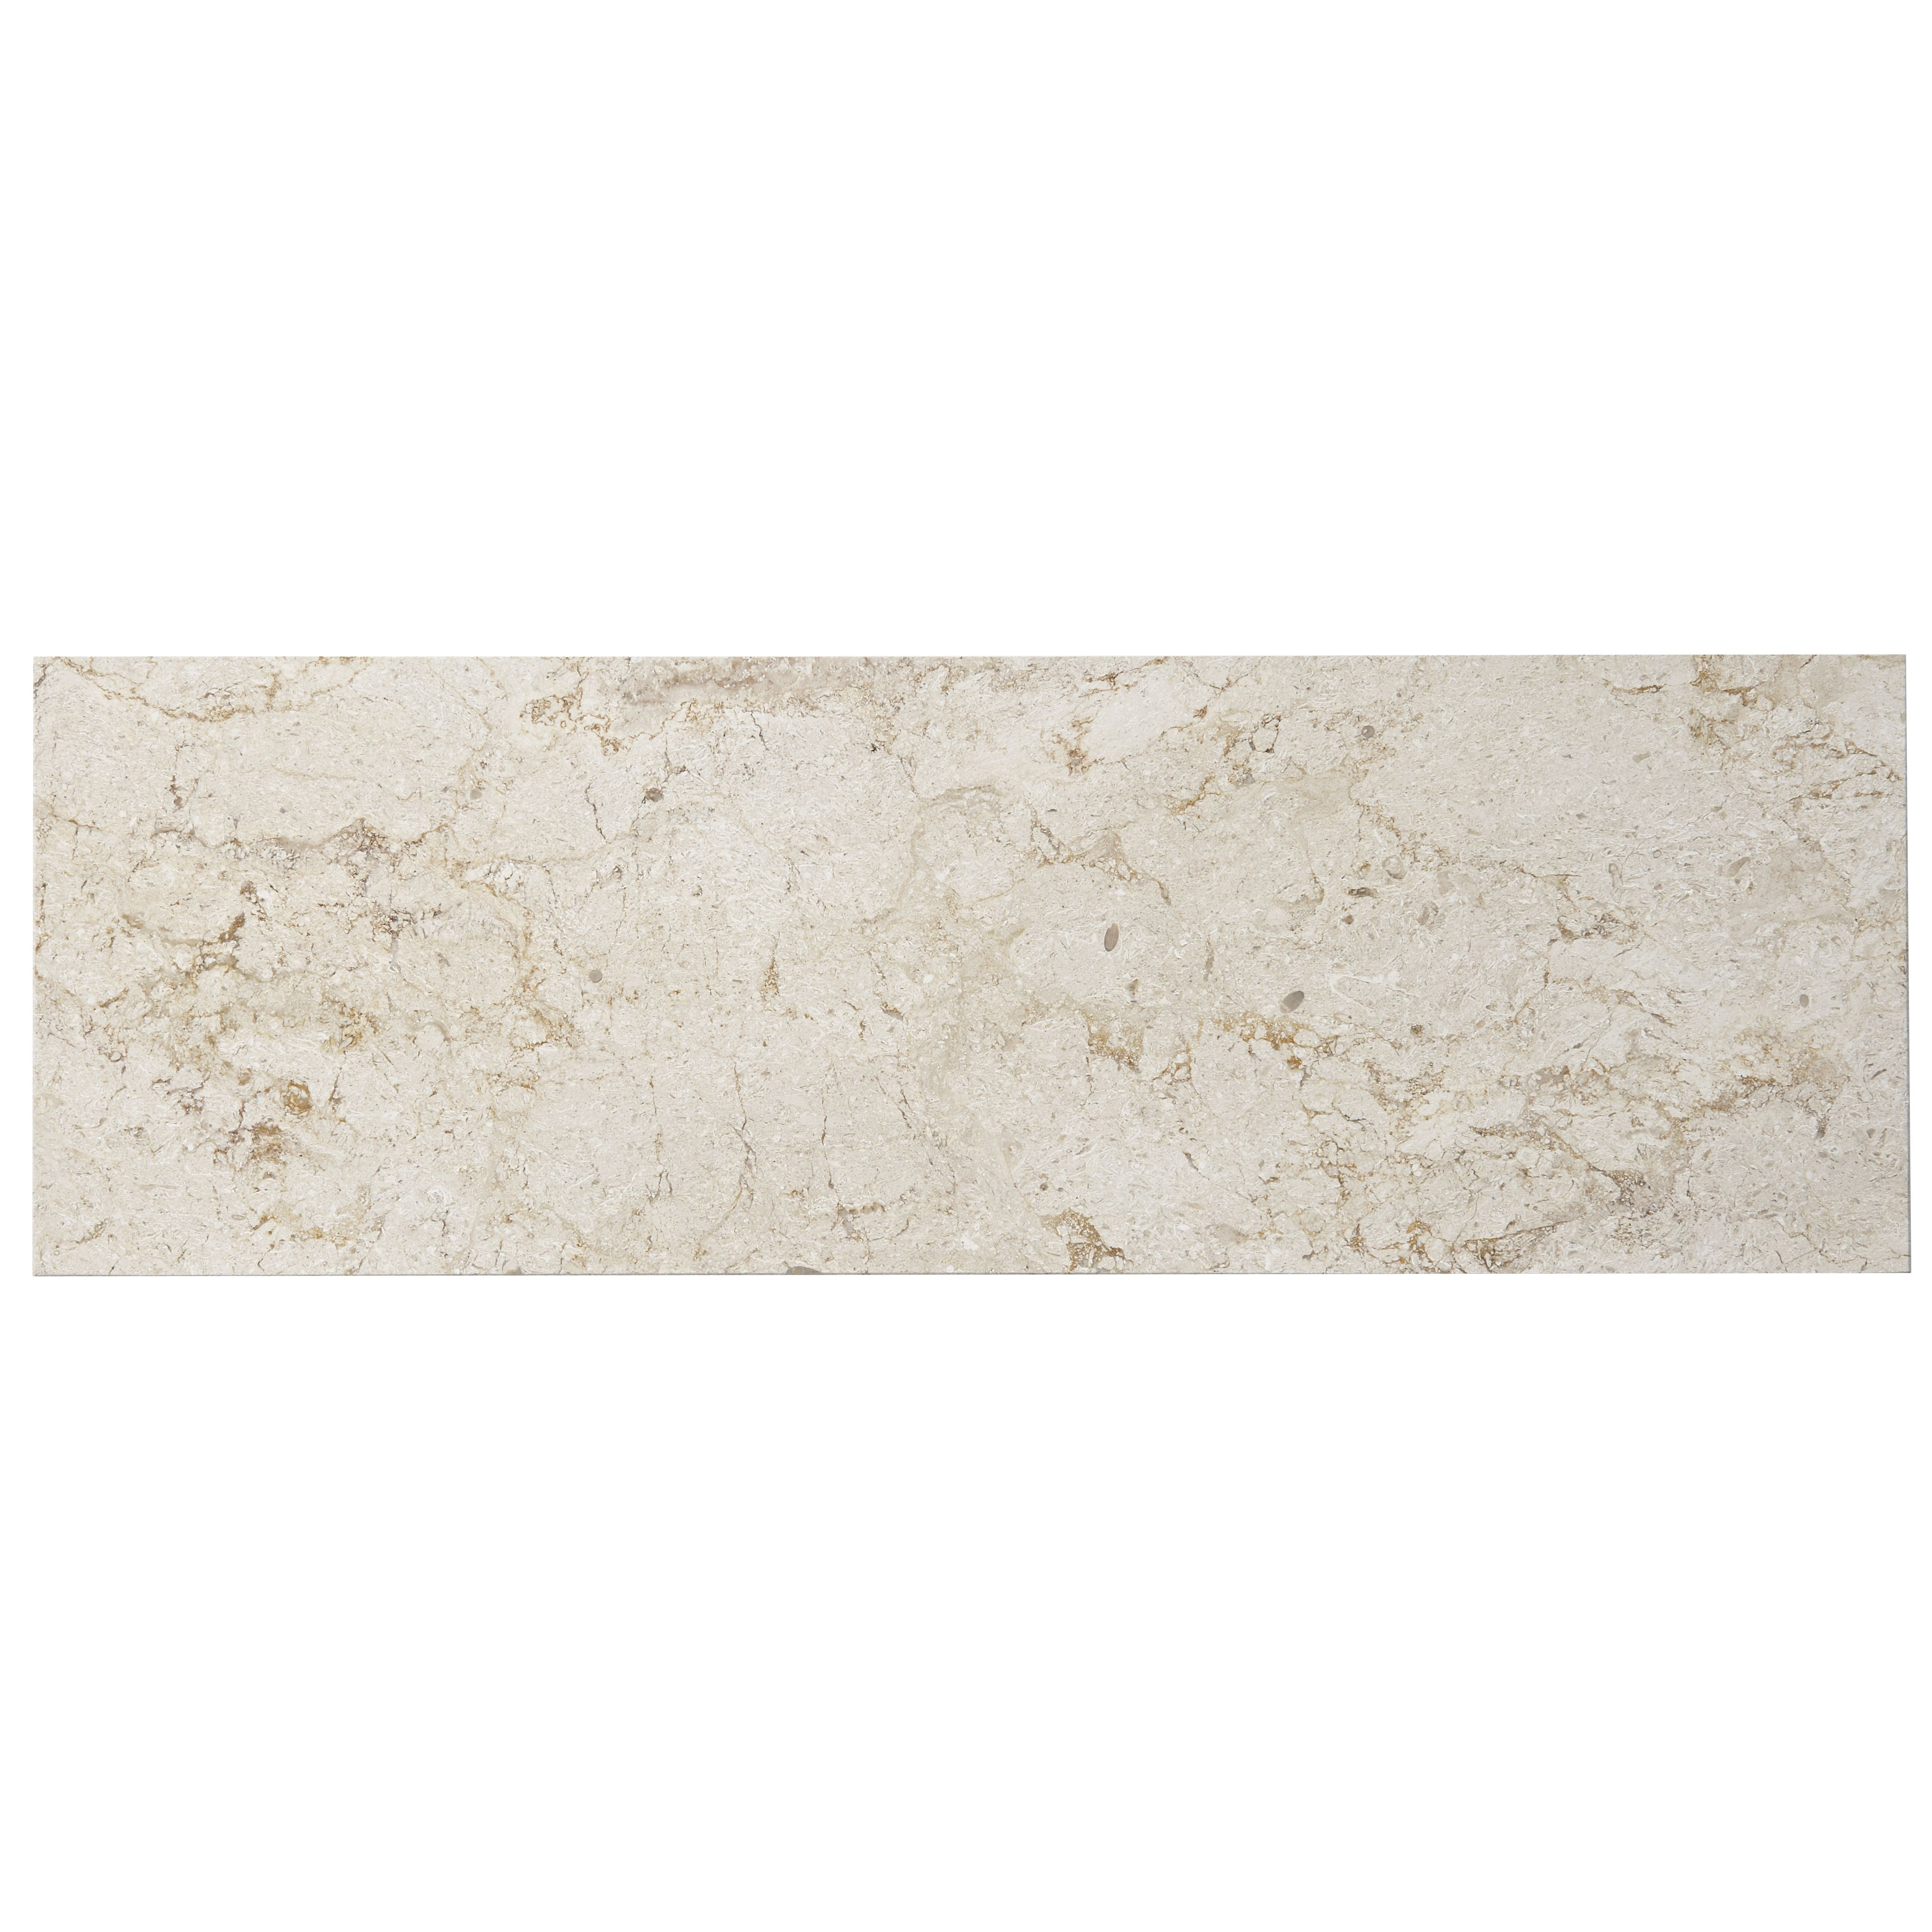 Urban White Stone Effect Ceramic Wall Floor Tile Pack: Natural Stone Cream Marble Effect Marble Wall & Floor Tile